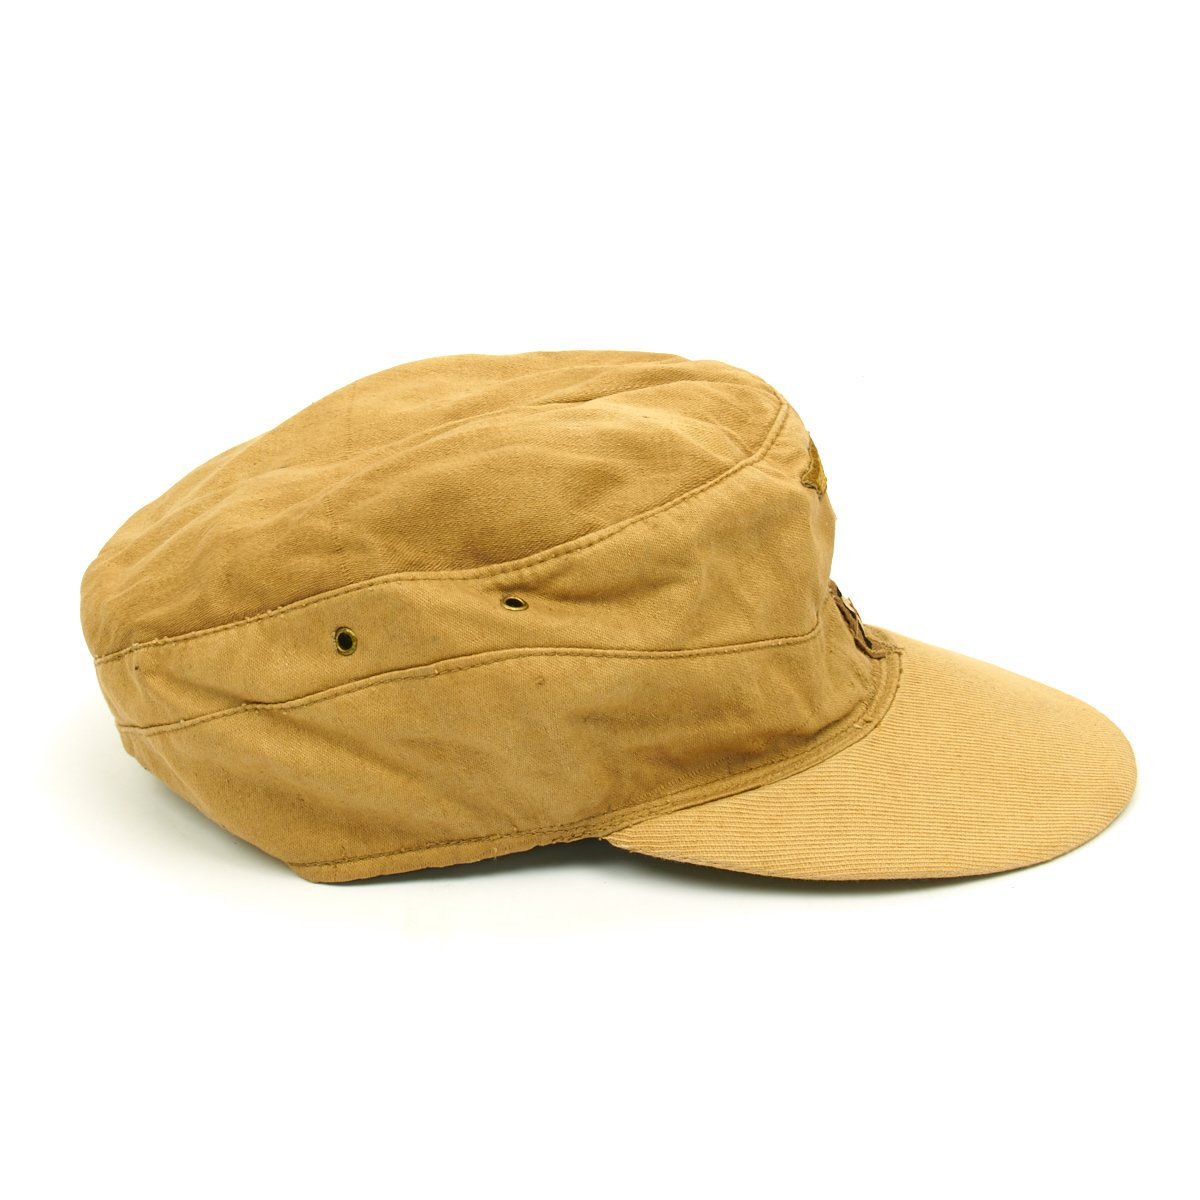 453fd663bf5f2 Original German WWII M43 Afrika Korps Tropical Field Cap - French  Manufacture